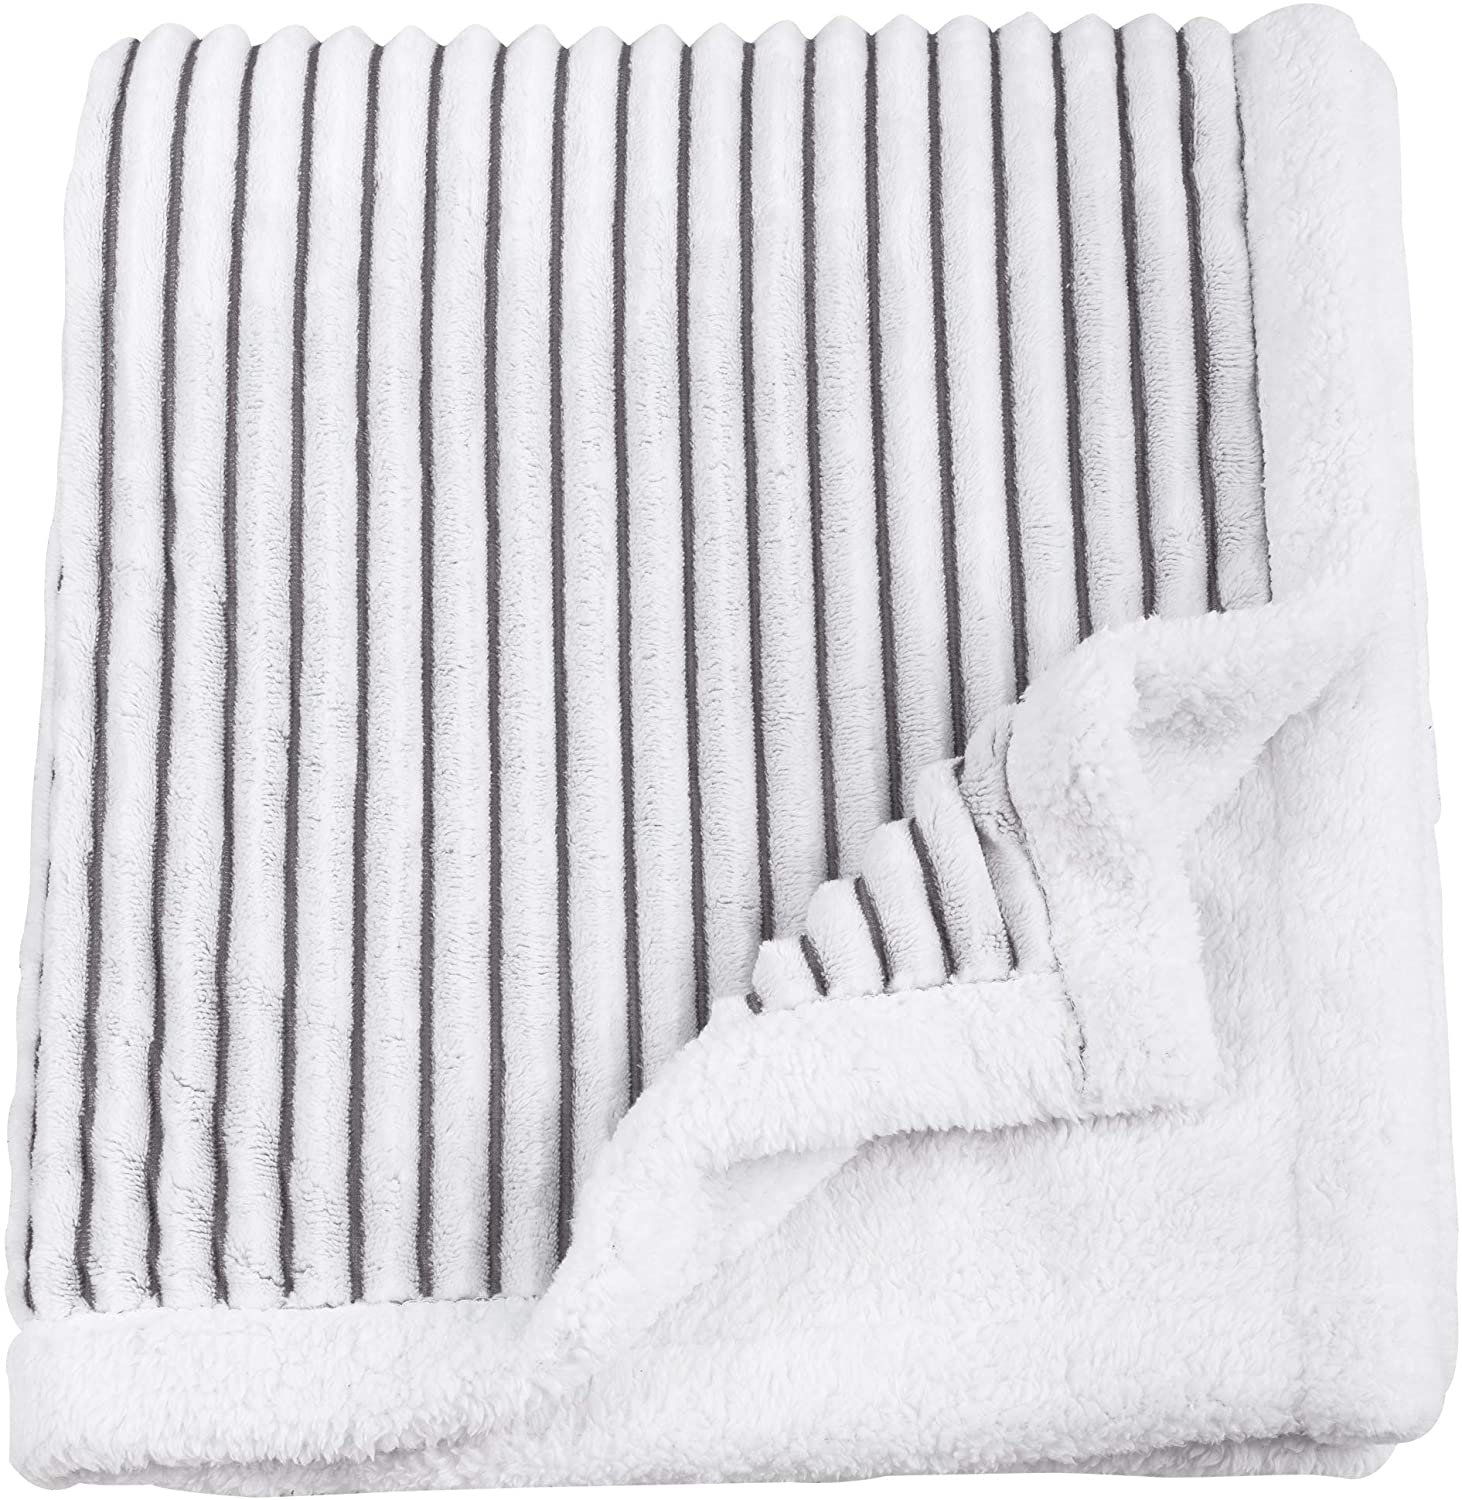 SOCHOW Sherpa Fleece Throw Blanket, Super Soft Fluffy Warm Stripe Plush Blanket for Sofa Couch Bed 60 x 80 Inches, Grey/White